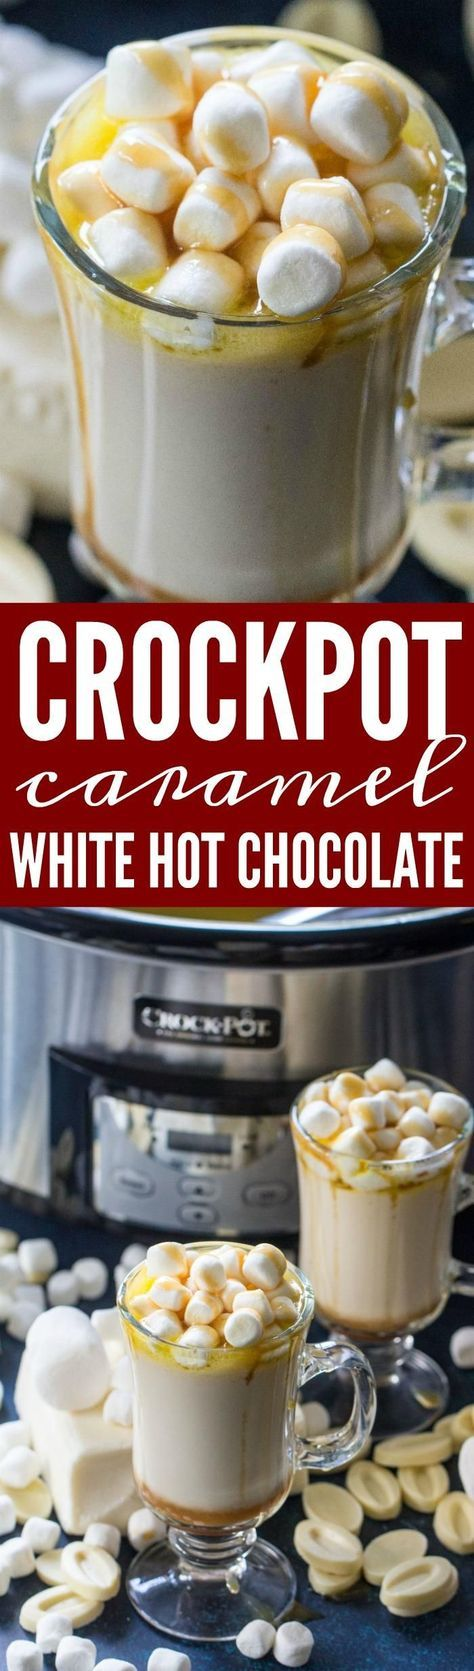 This Caramel White Hot Chocolate Recipe is the perfect Crockpot Hot Drink Recipe for cold Winter nights, Snow Days, Holidays, Thanksgiving, and Christmas! #thanksgiving #recipes #holidays #thanksgivingrecipes #christmas #pierecipes #hotchocolate